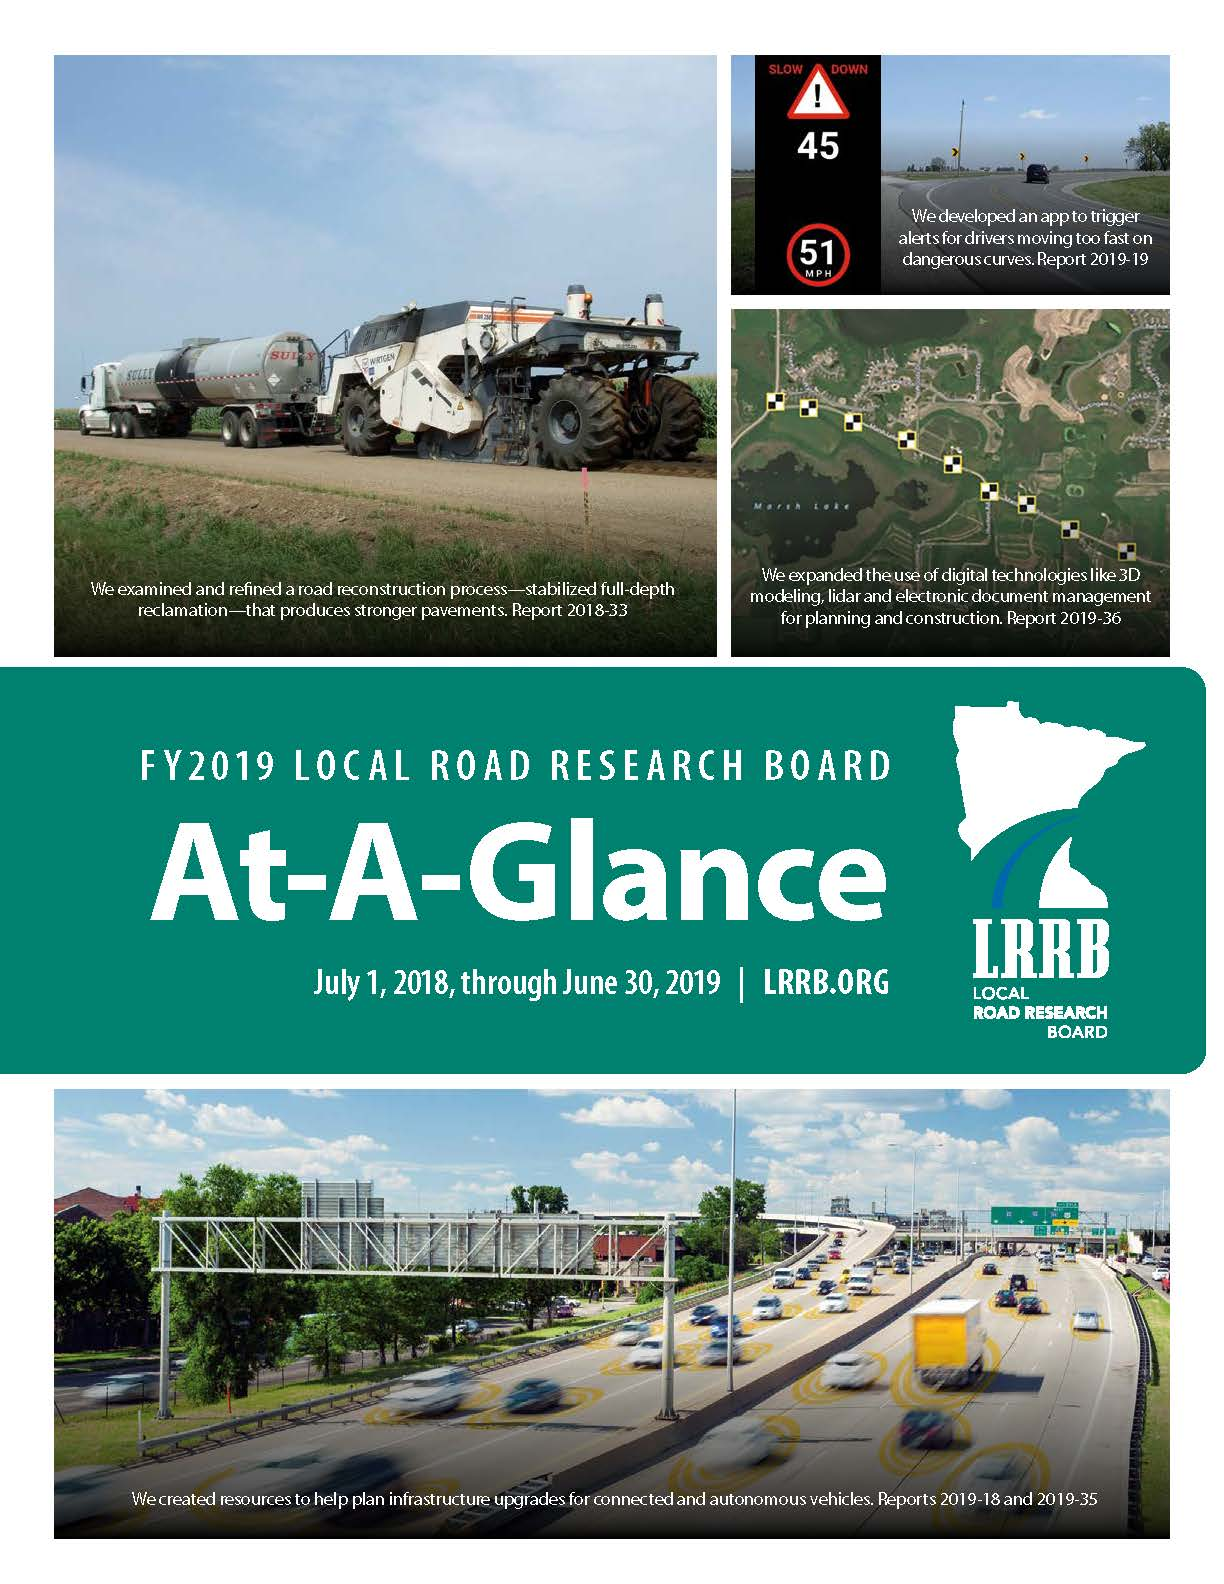 FY2019 At-A-Glance Cover